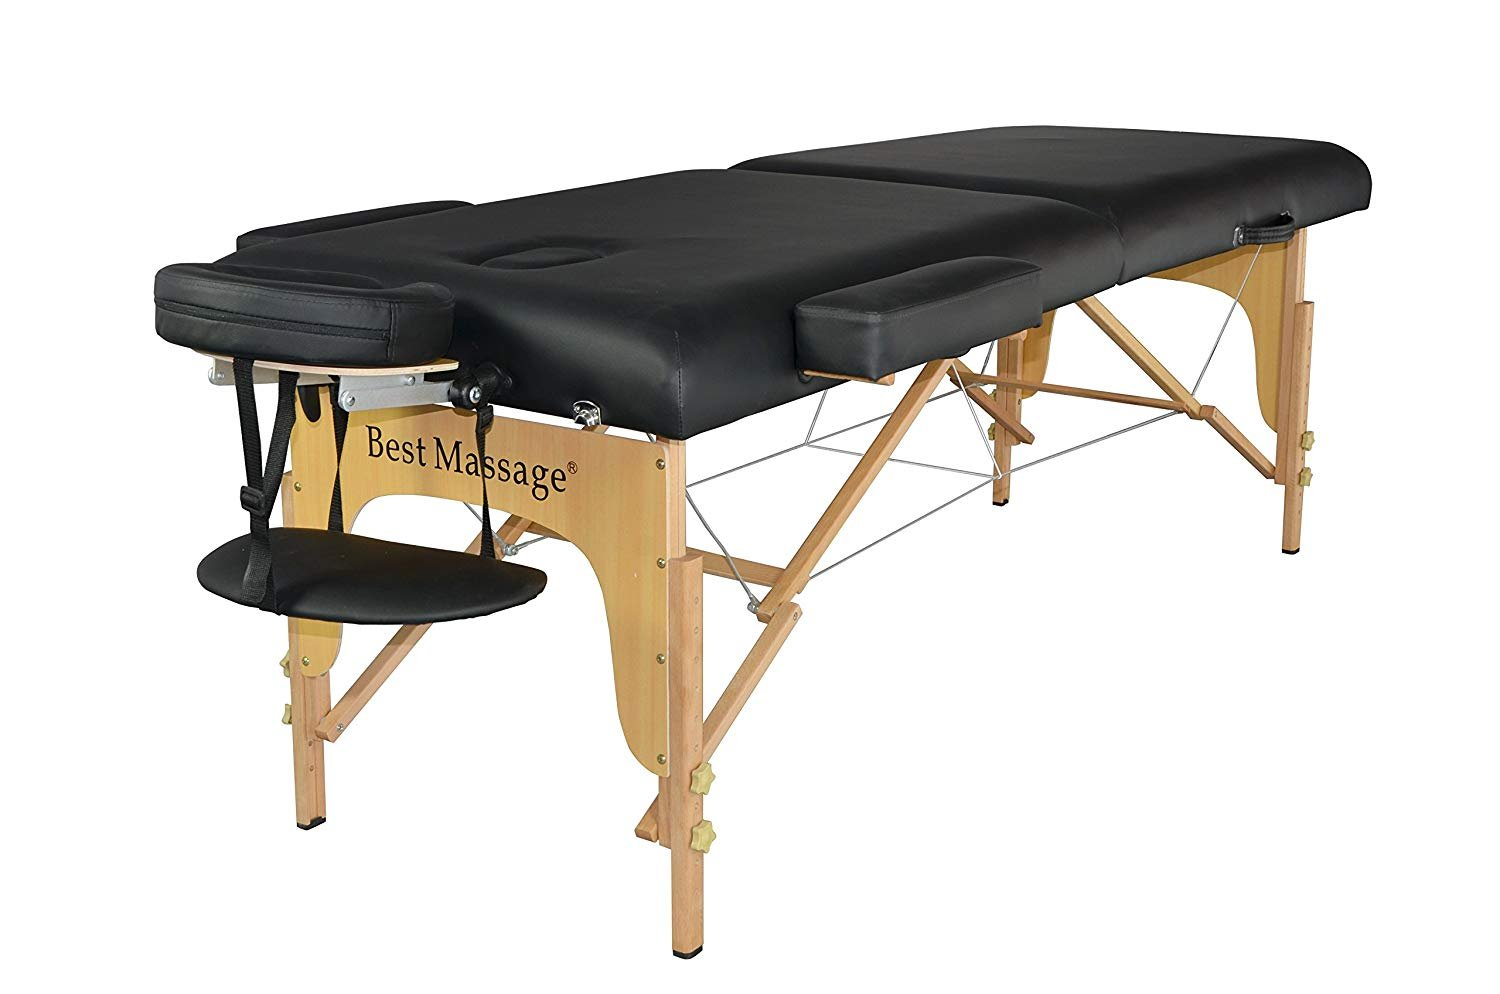 BestMassage PU Portable Massage Table w/Free Carry Case Bed Spa Facial